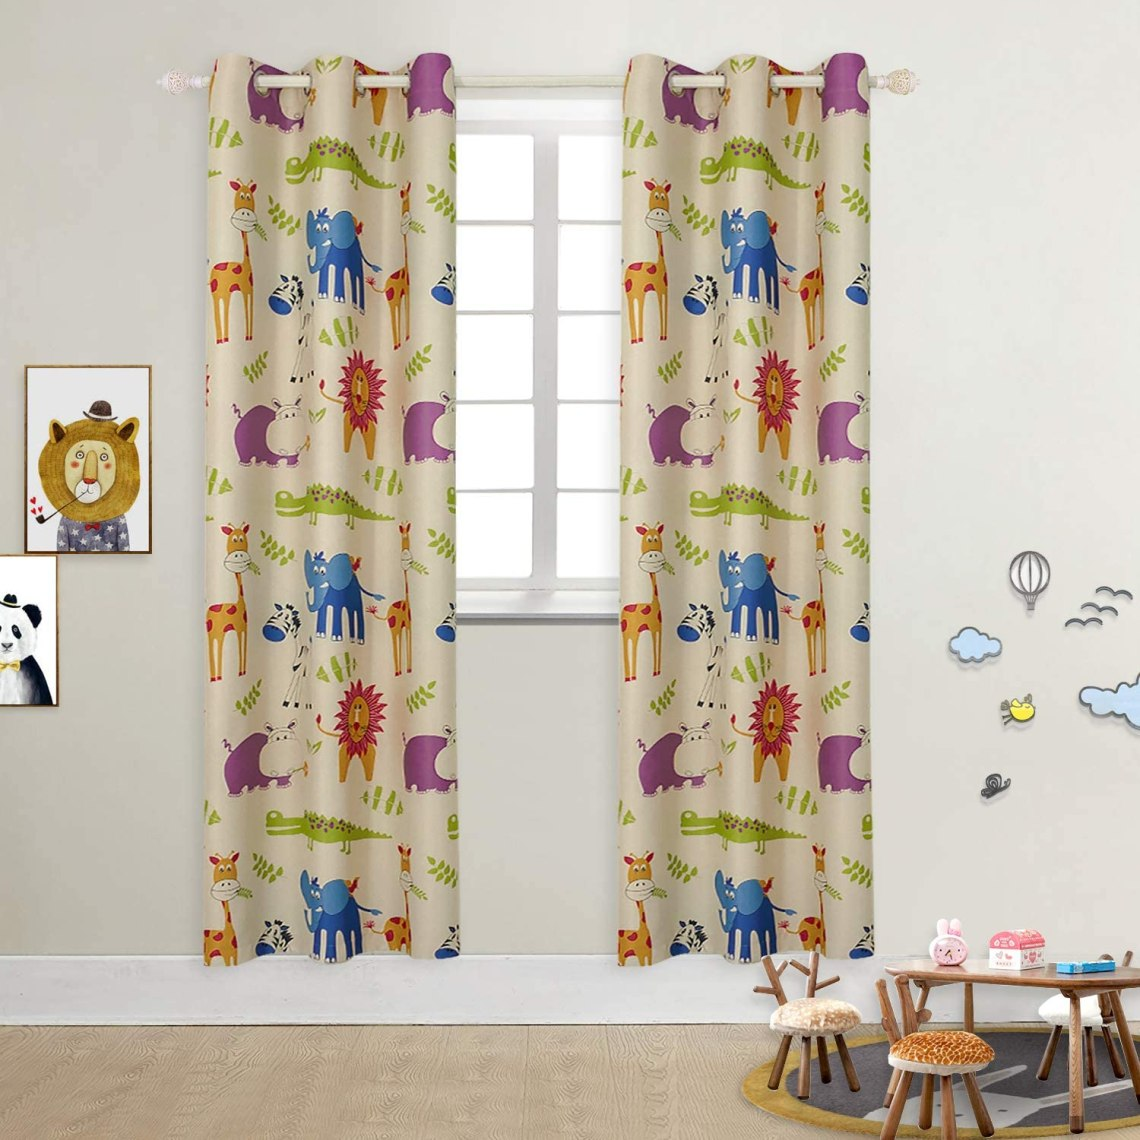 Buy Bgment Kids Blackout Curtains Grommet Thermal Insulated Room Darkening Printed Animal Zoo Patterns Nursery And Kids Bedroom Curtains Set Of 2 Curtain Panels 42 X 84 Inch Beige Zoo Online In Turkey B075pcsdps